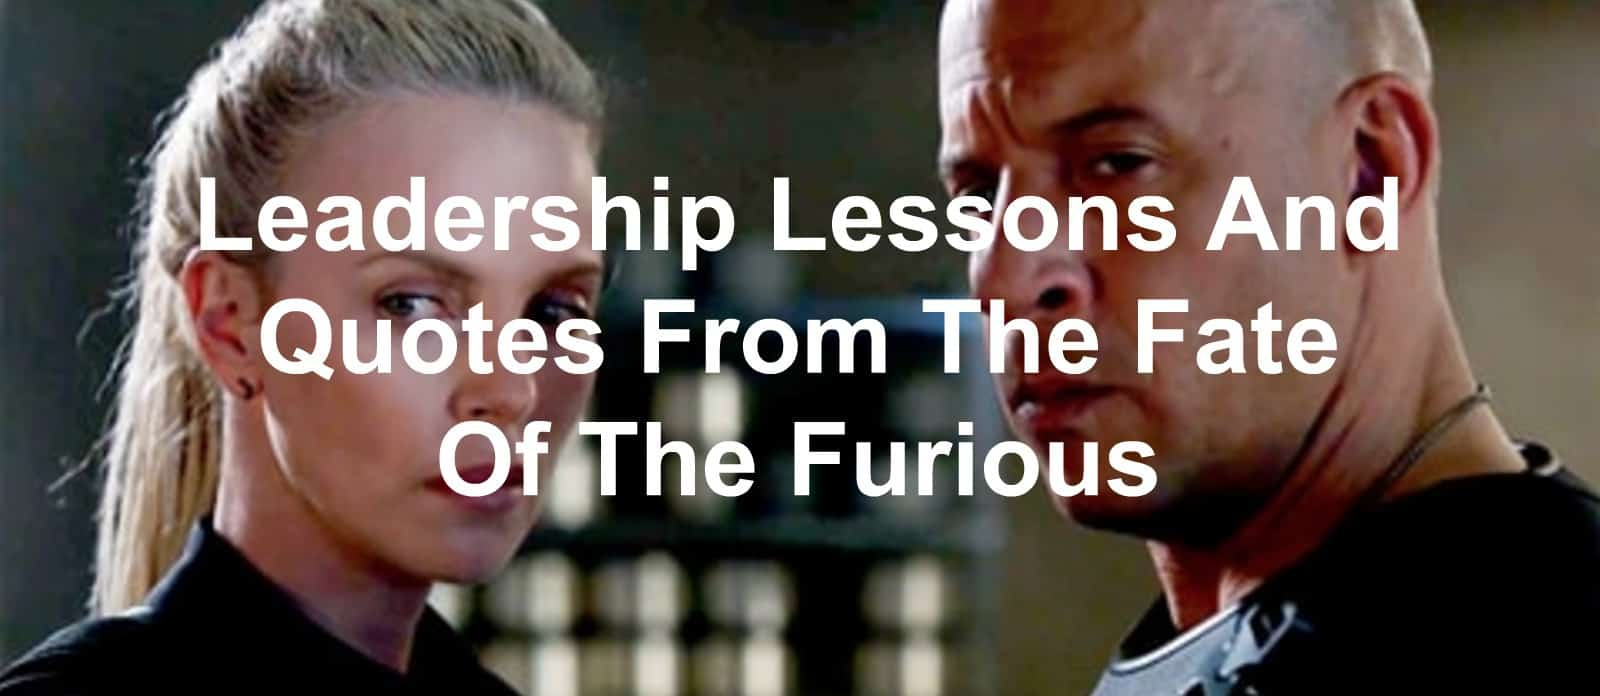 quotes and leadership lessons from the fate of the furious